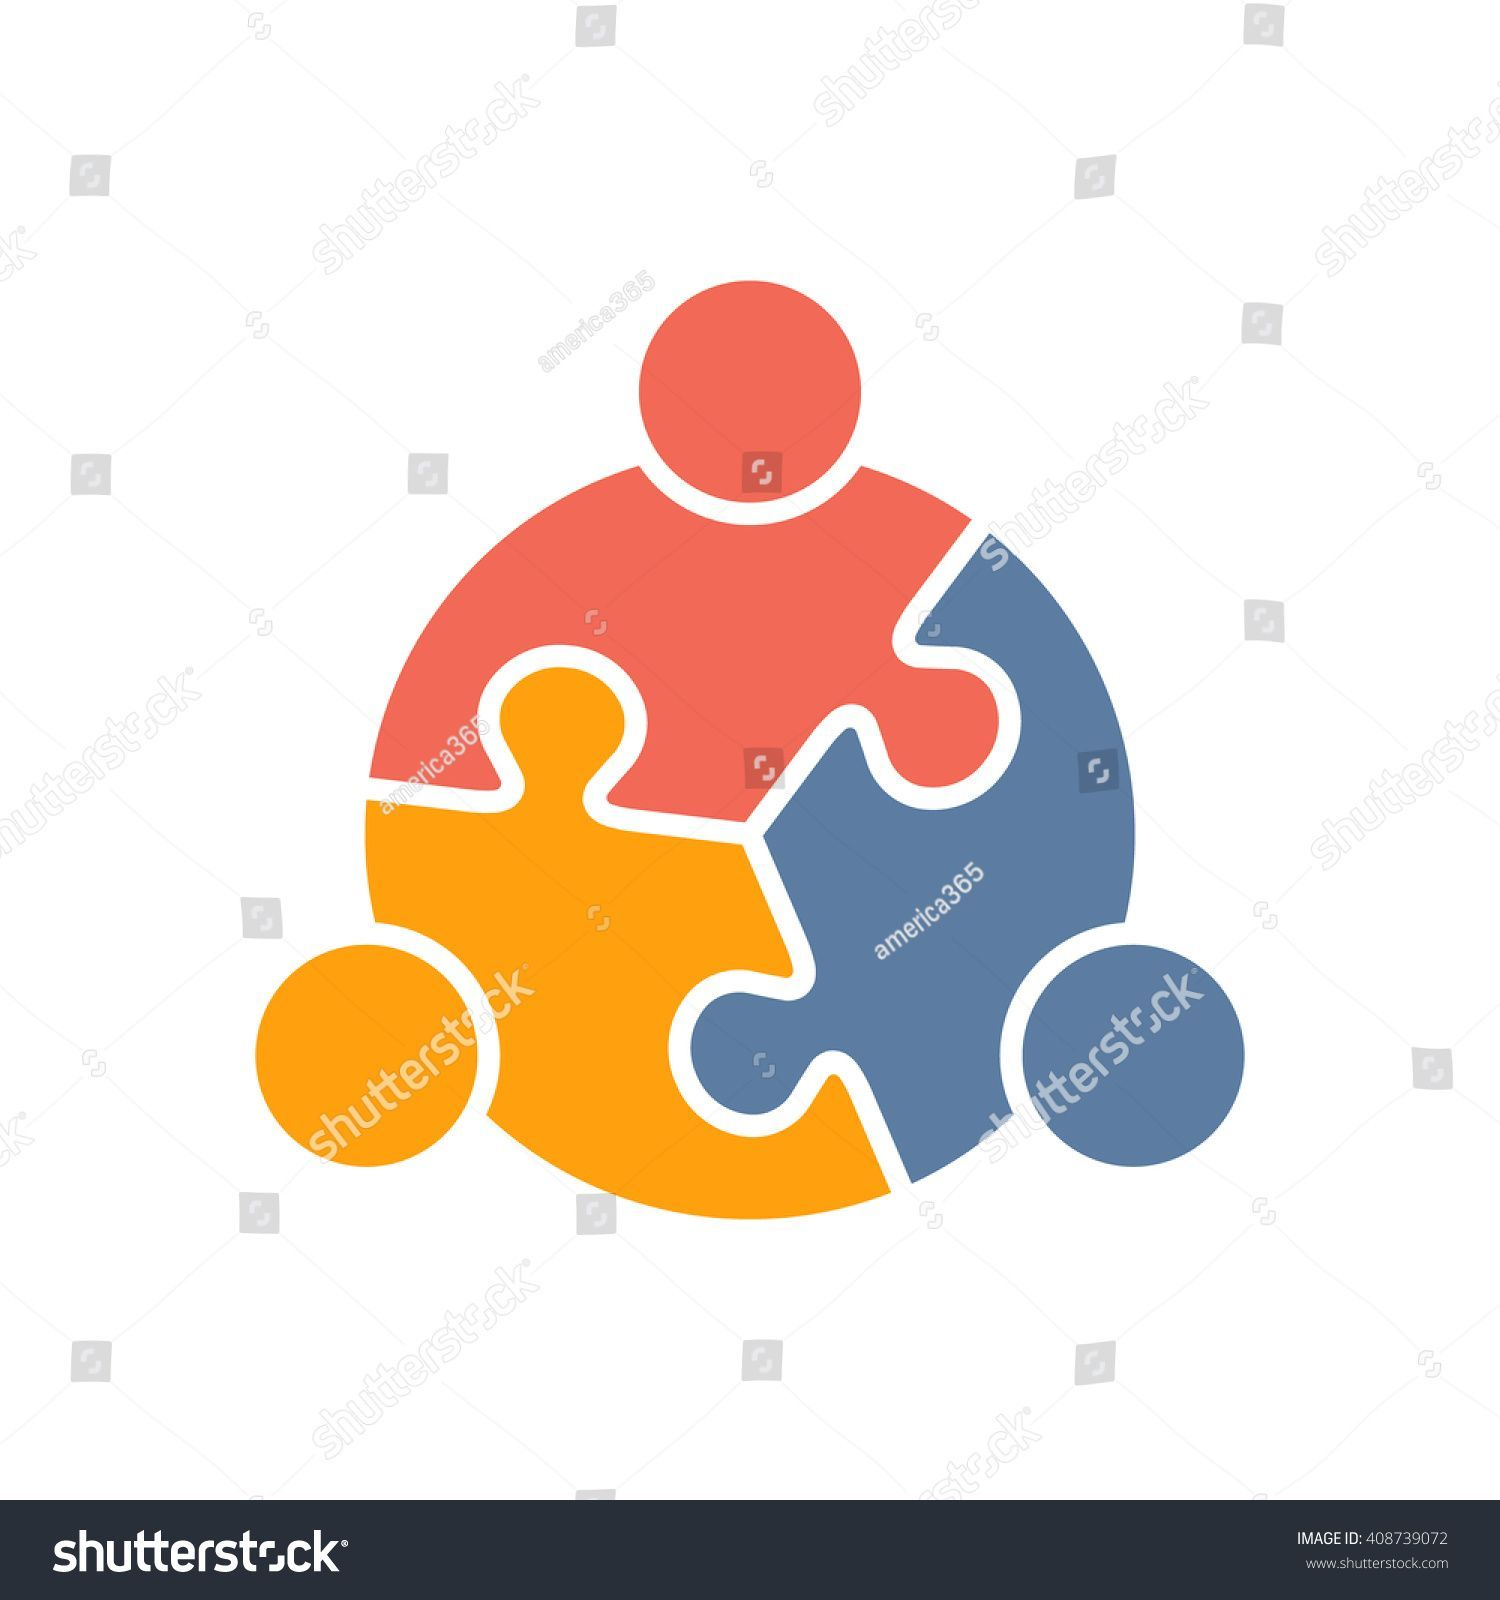 Teamwork clipart logo. People puzzle three pieces